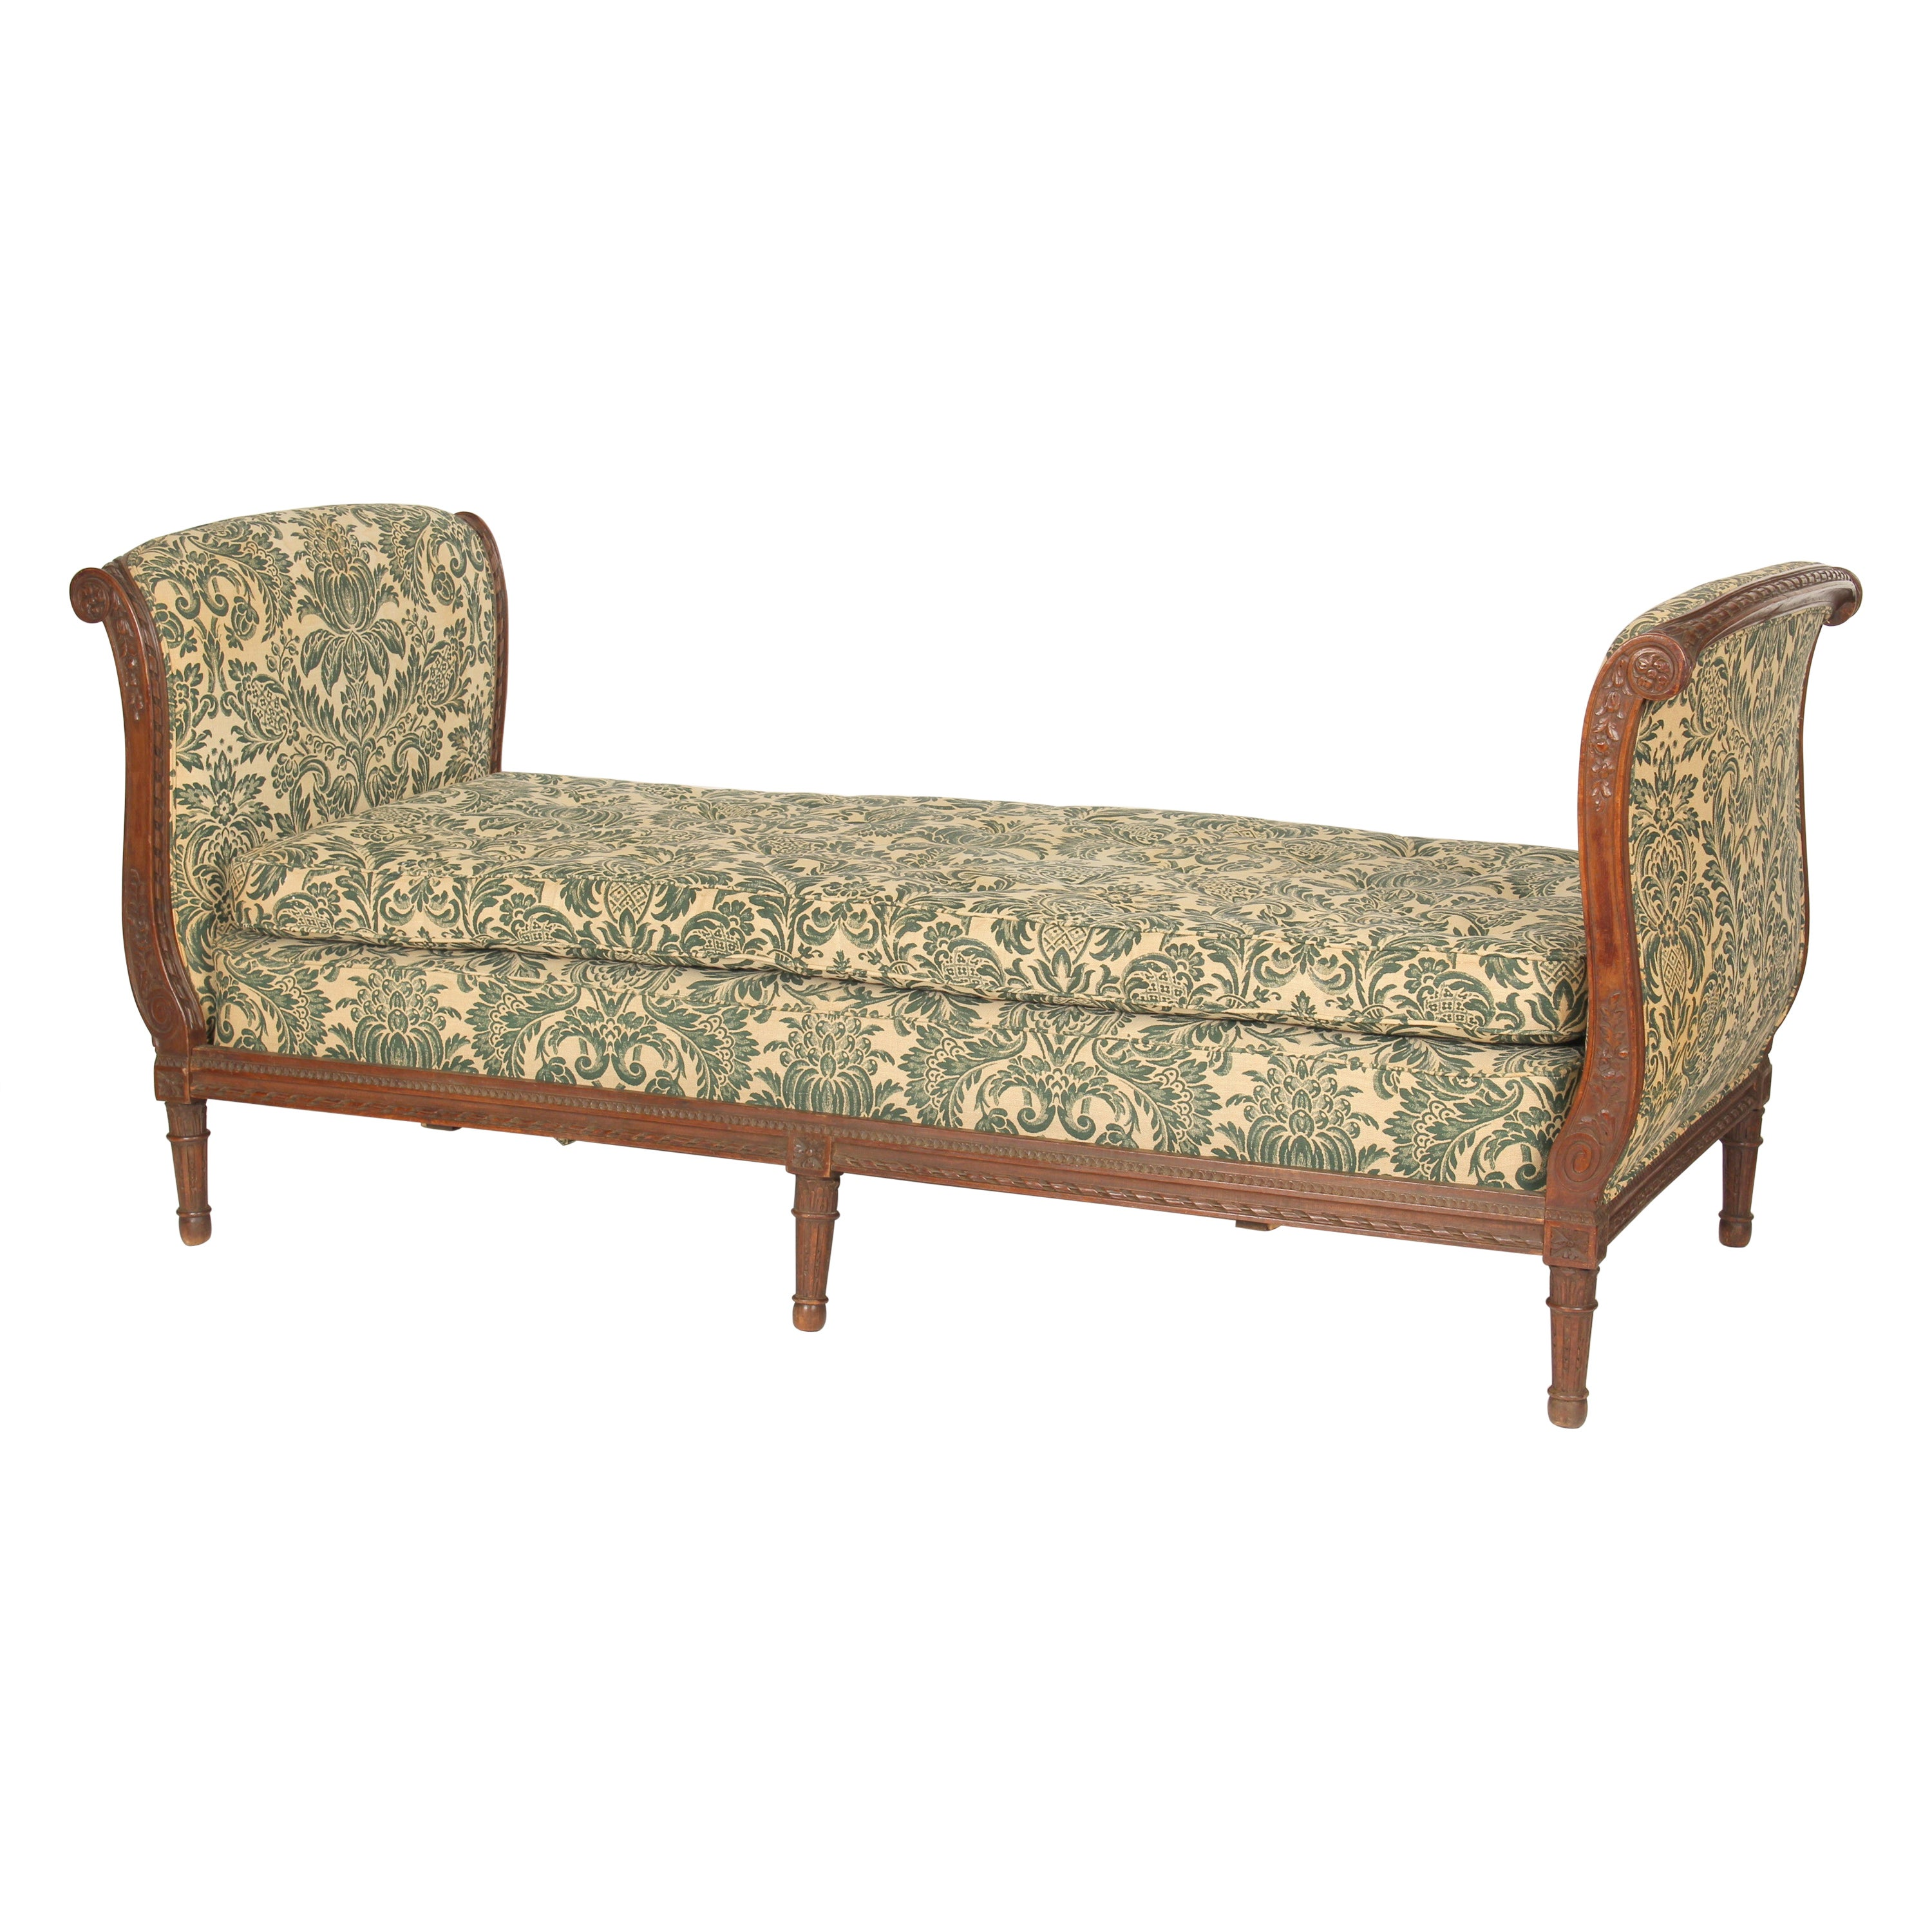 Antique Louis XVI Style Daybed